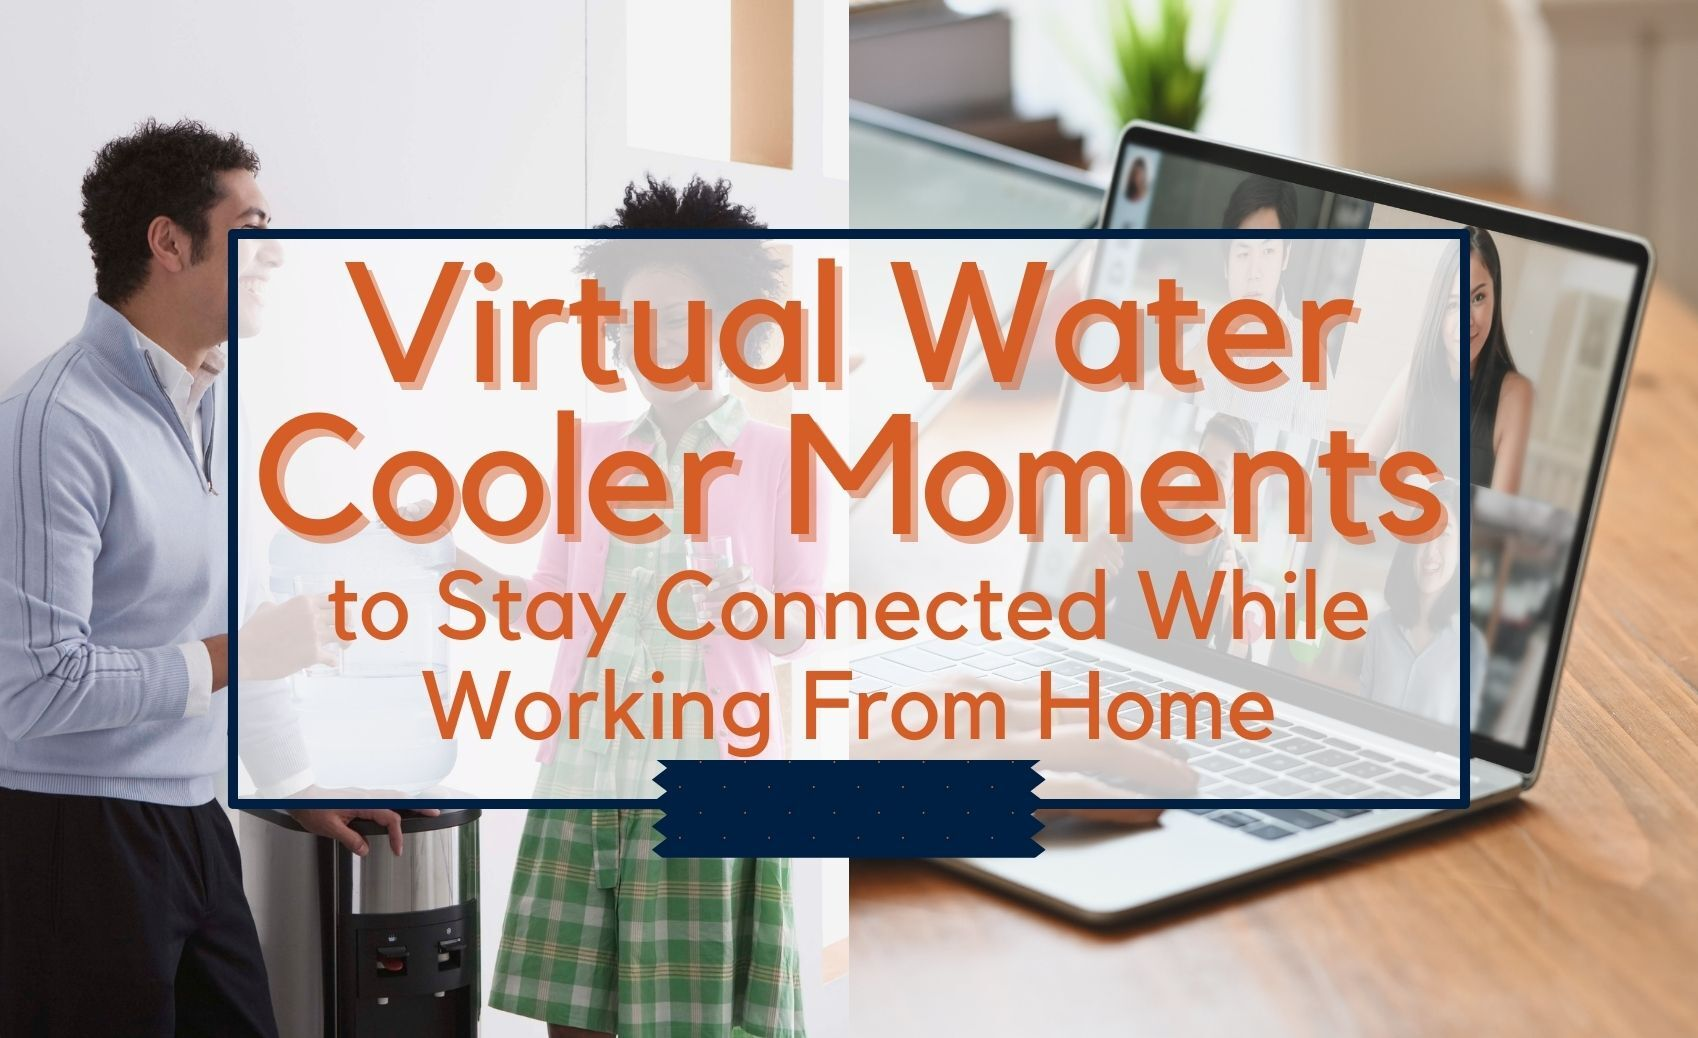 Virtual Water Cooler Moments to Stay Connected While Working From Home